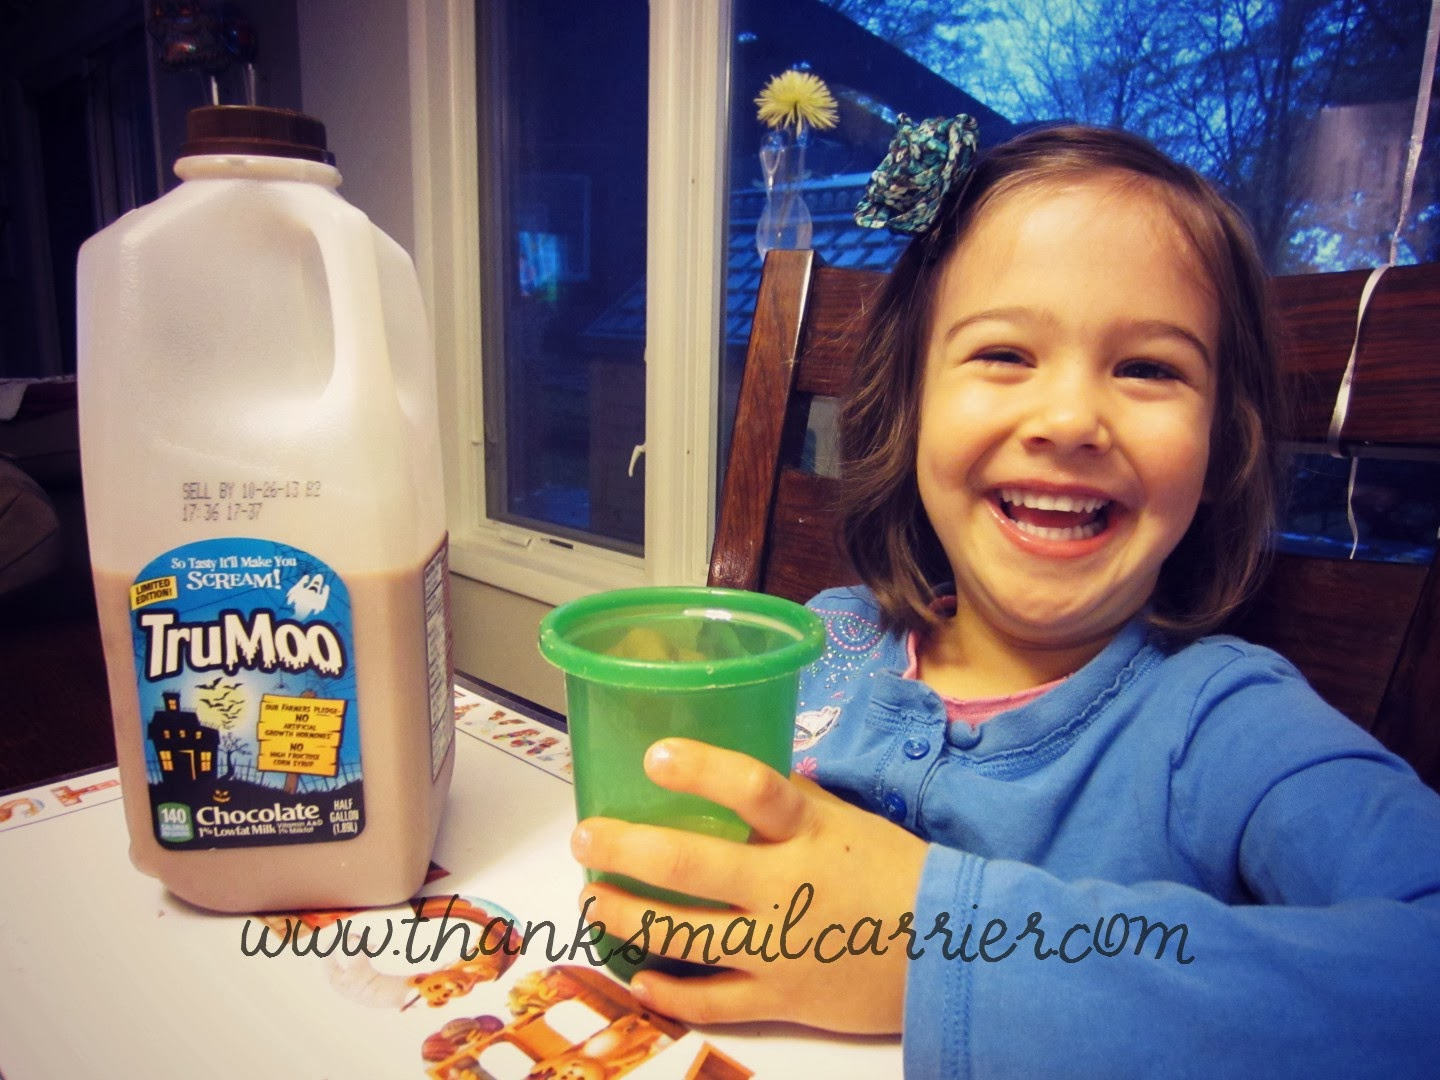 TruMoo milk review